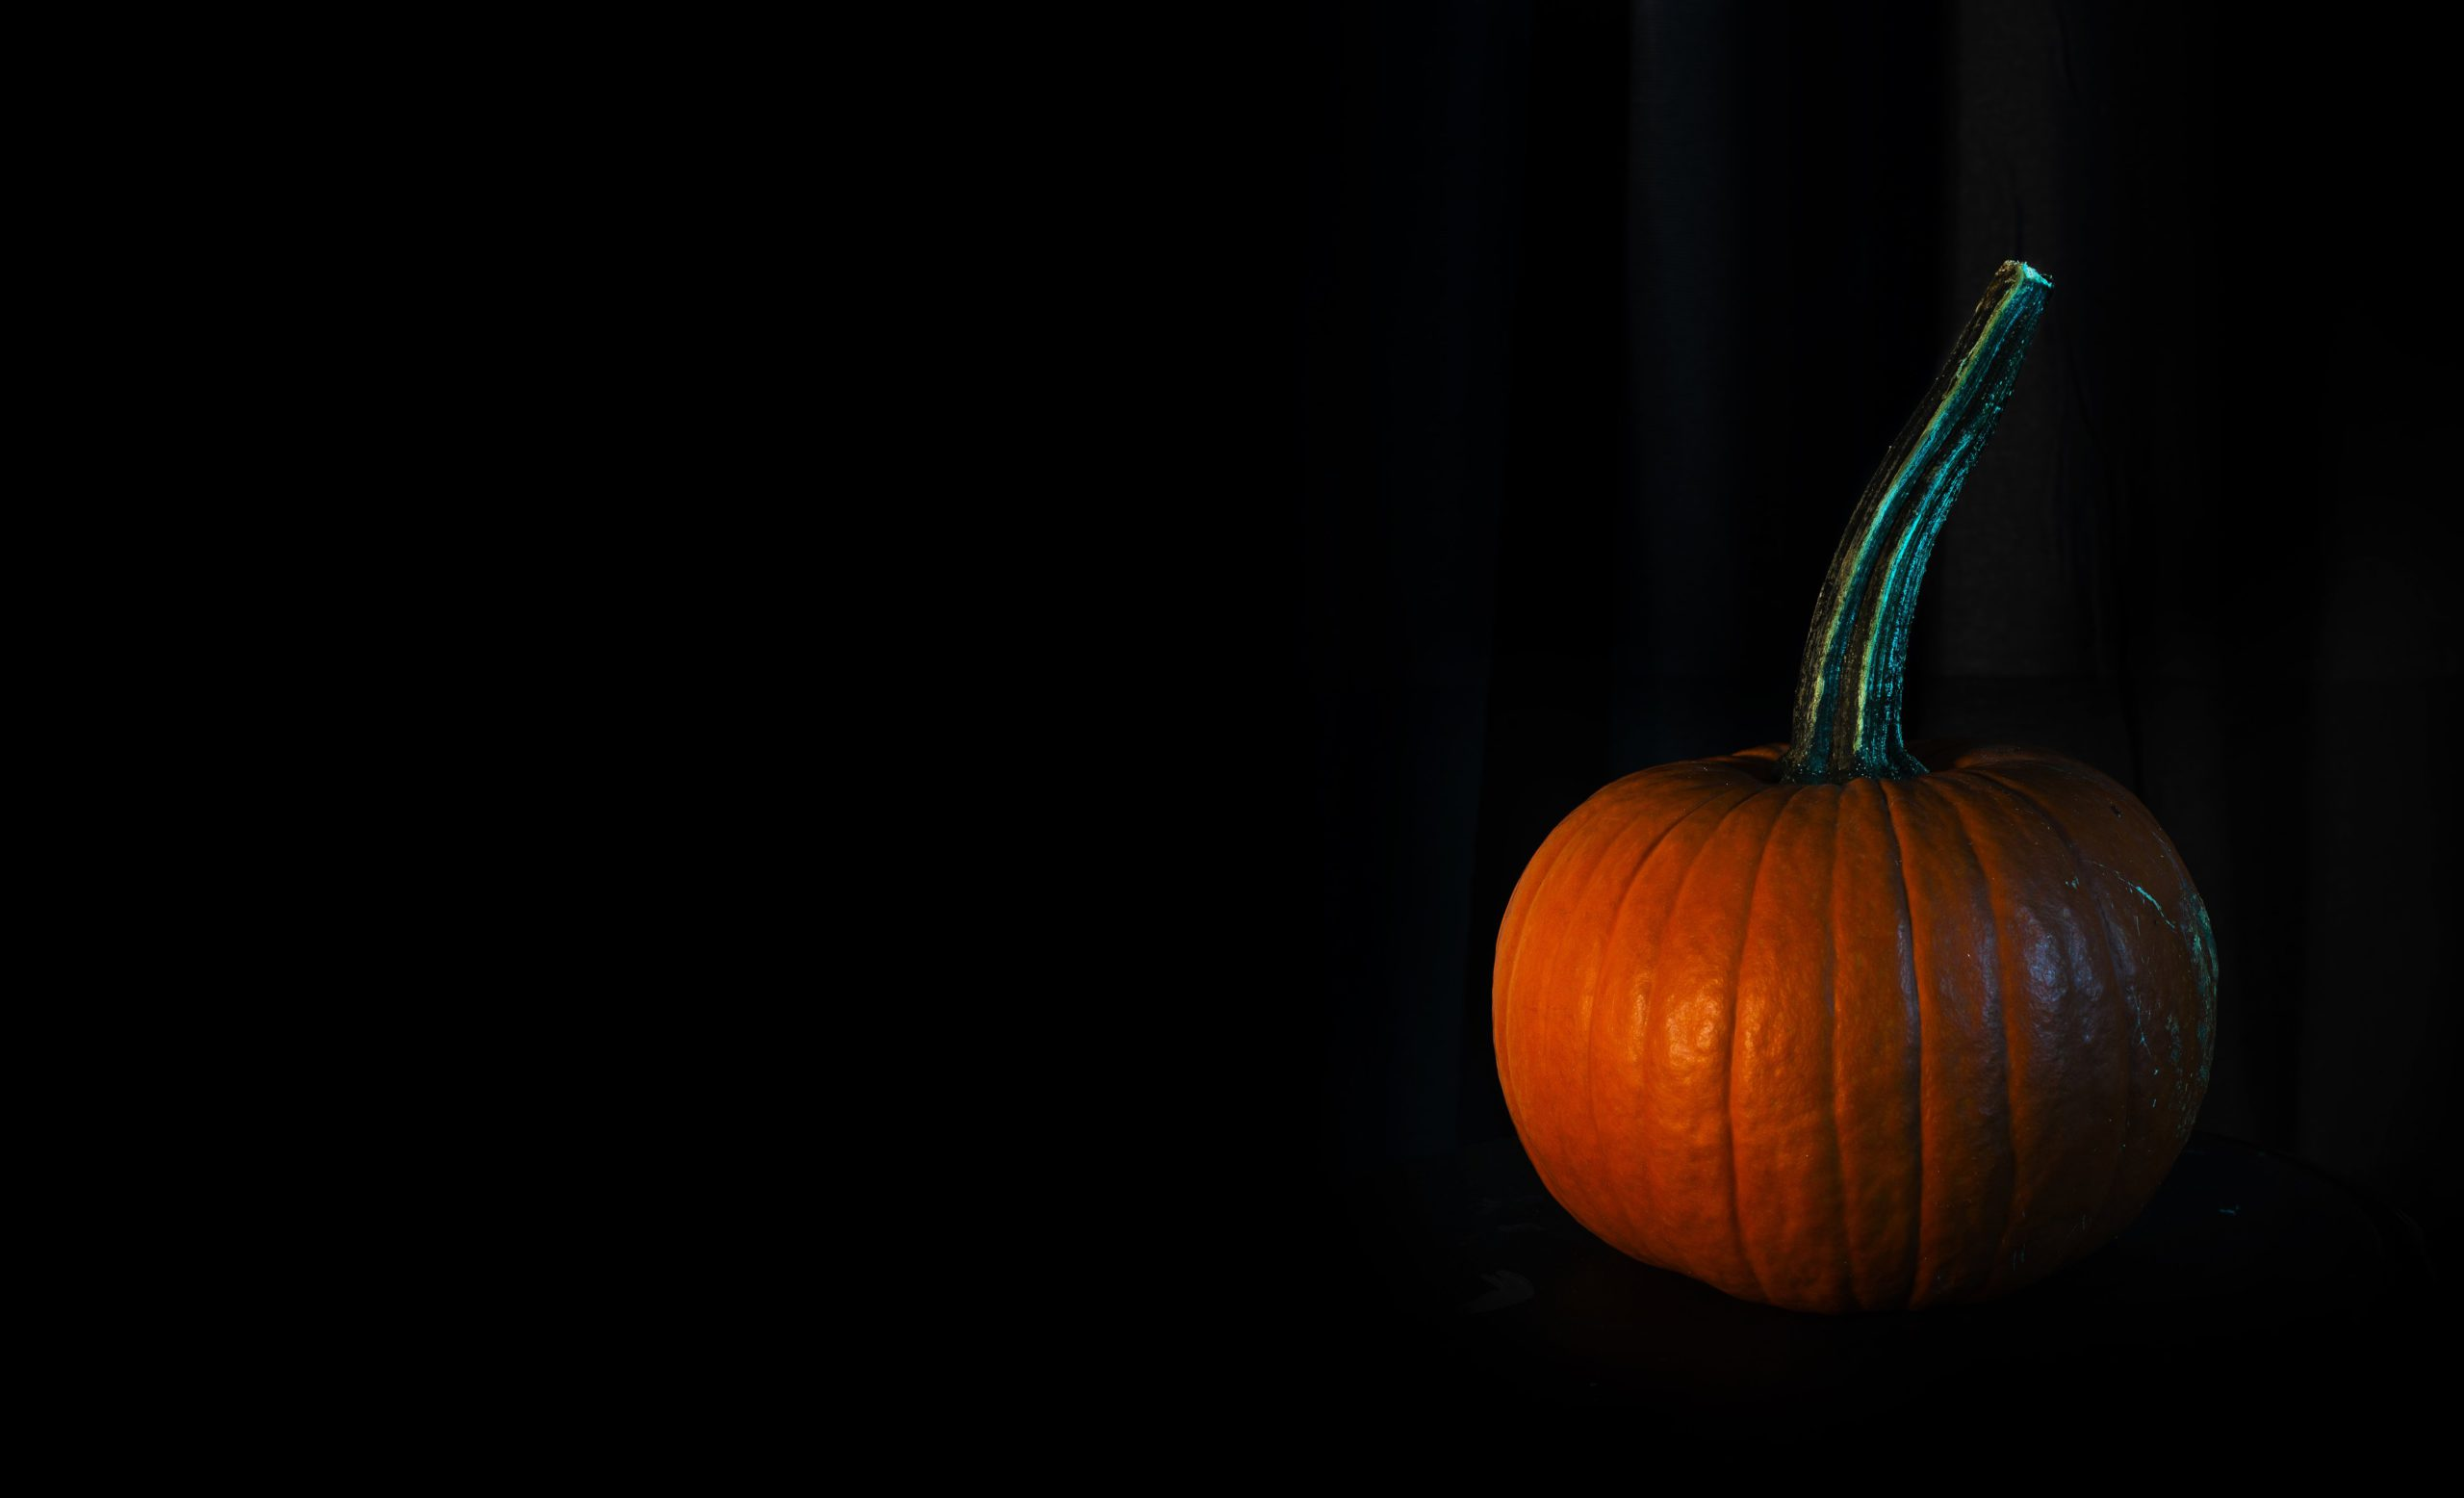 Photo of a Small Pumpkin on Black